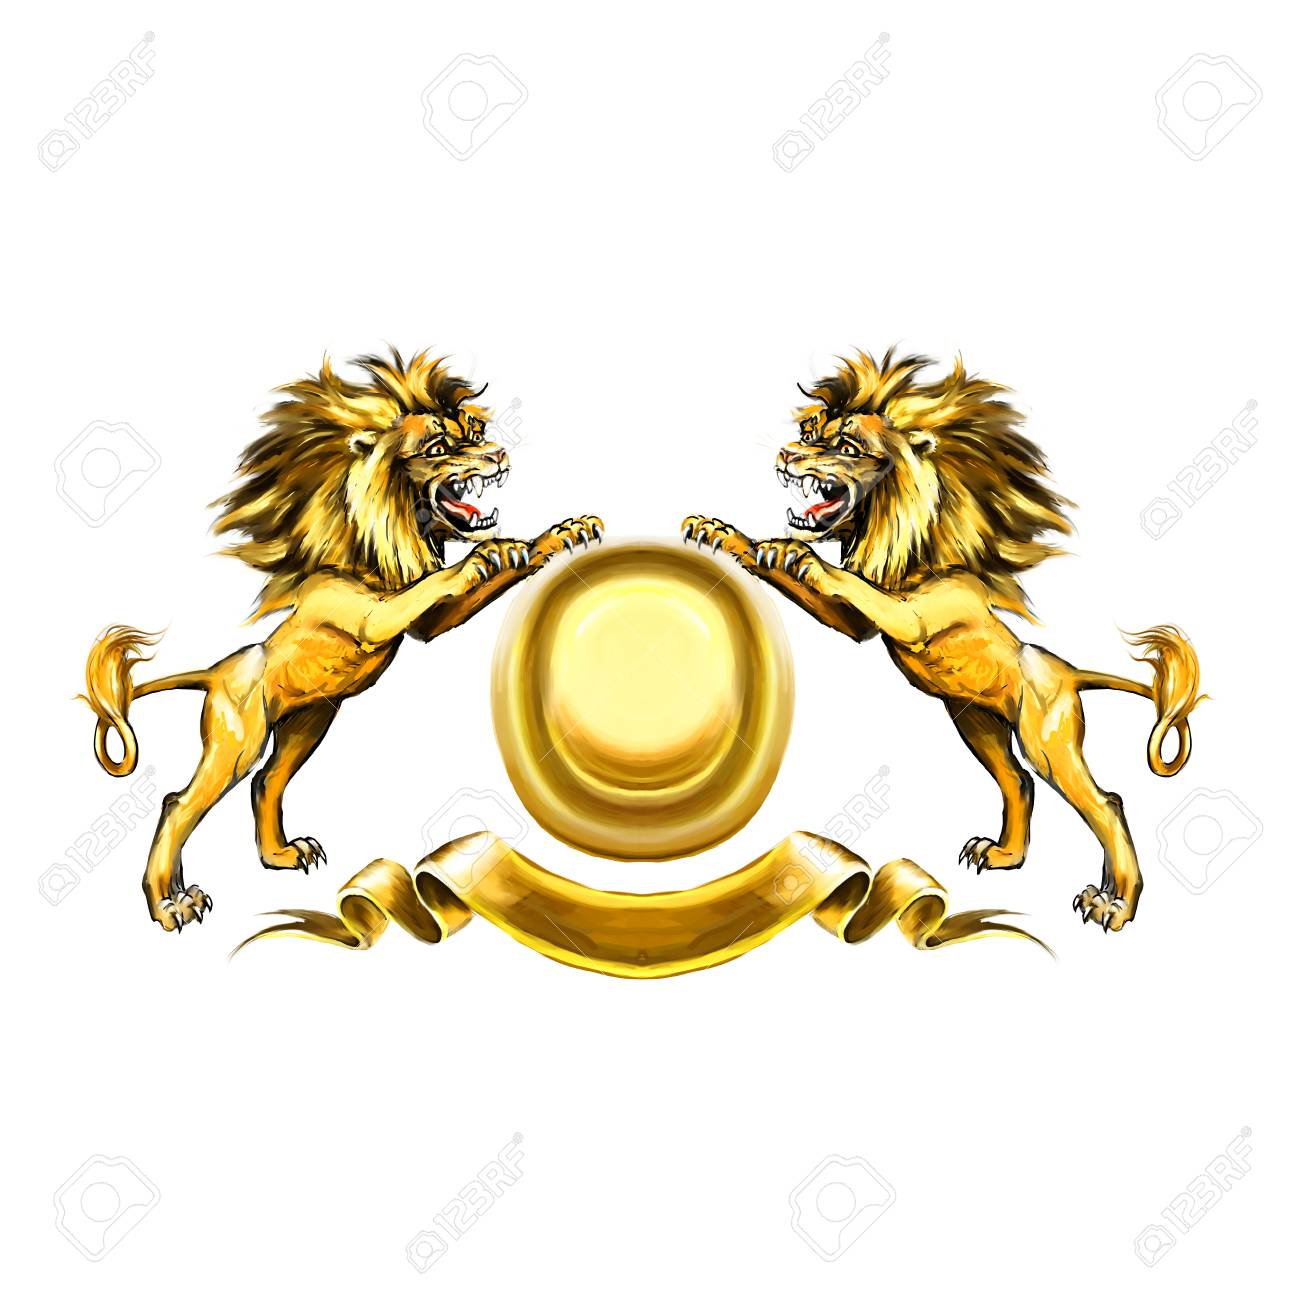 Lions Coat Of Arms Attacking Heraldic Symbol